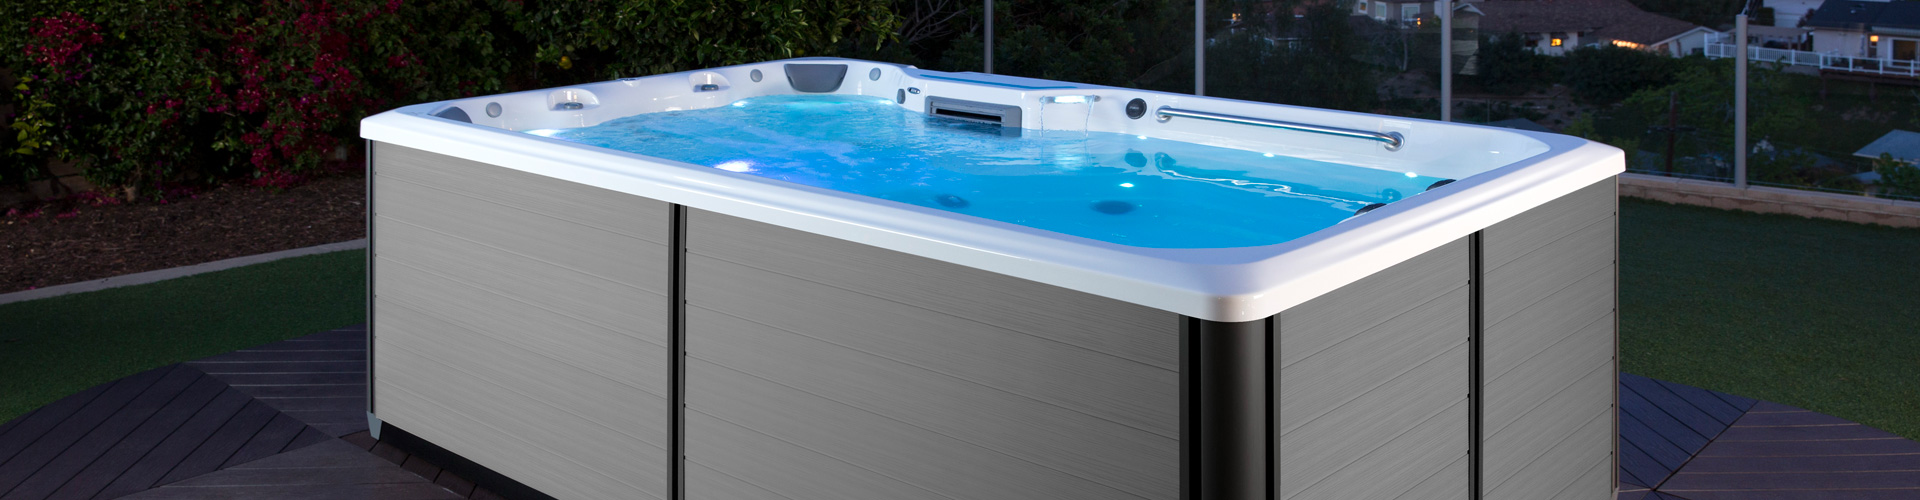 Swim Spas Arnolds Park, Lap Pools Dealer Shares 3 Surprising Benefits of the Modern Fitness Pool